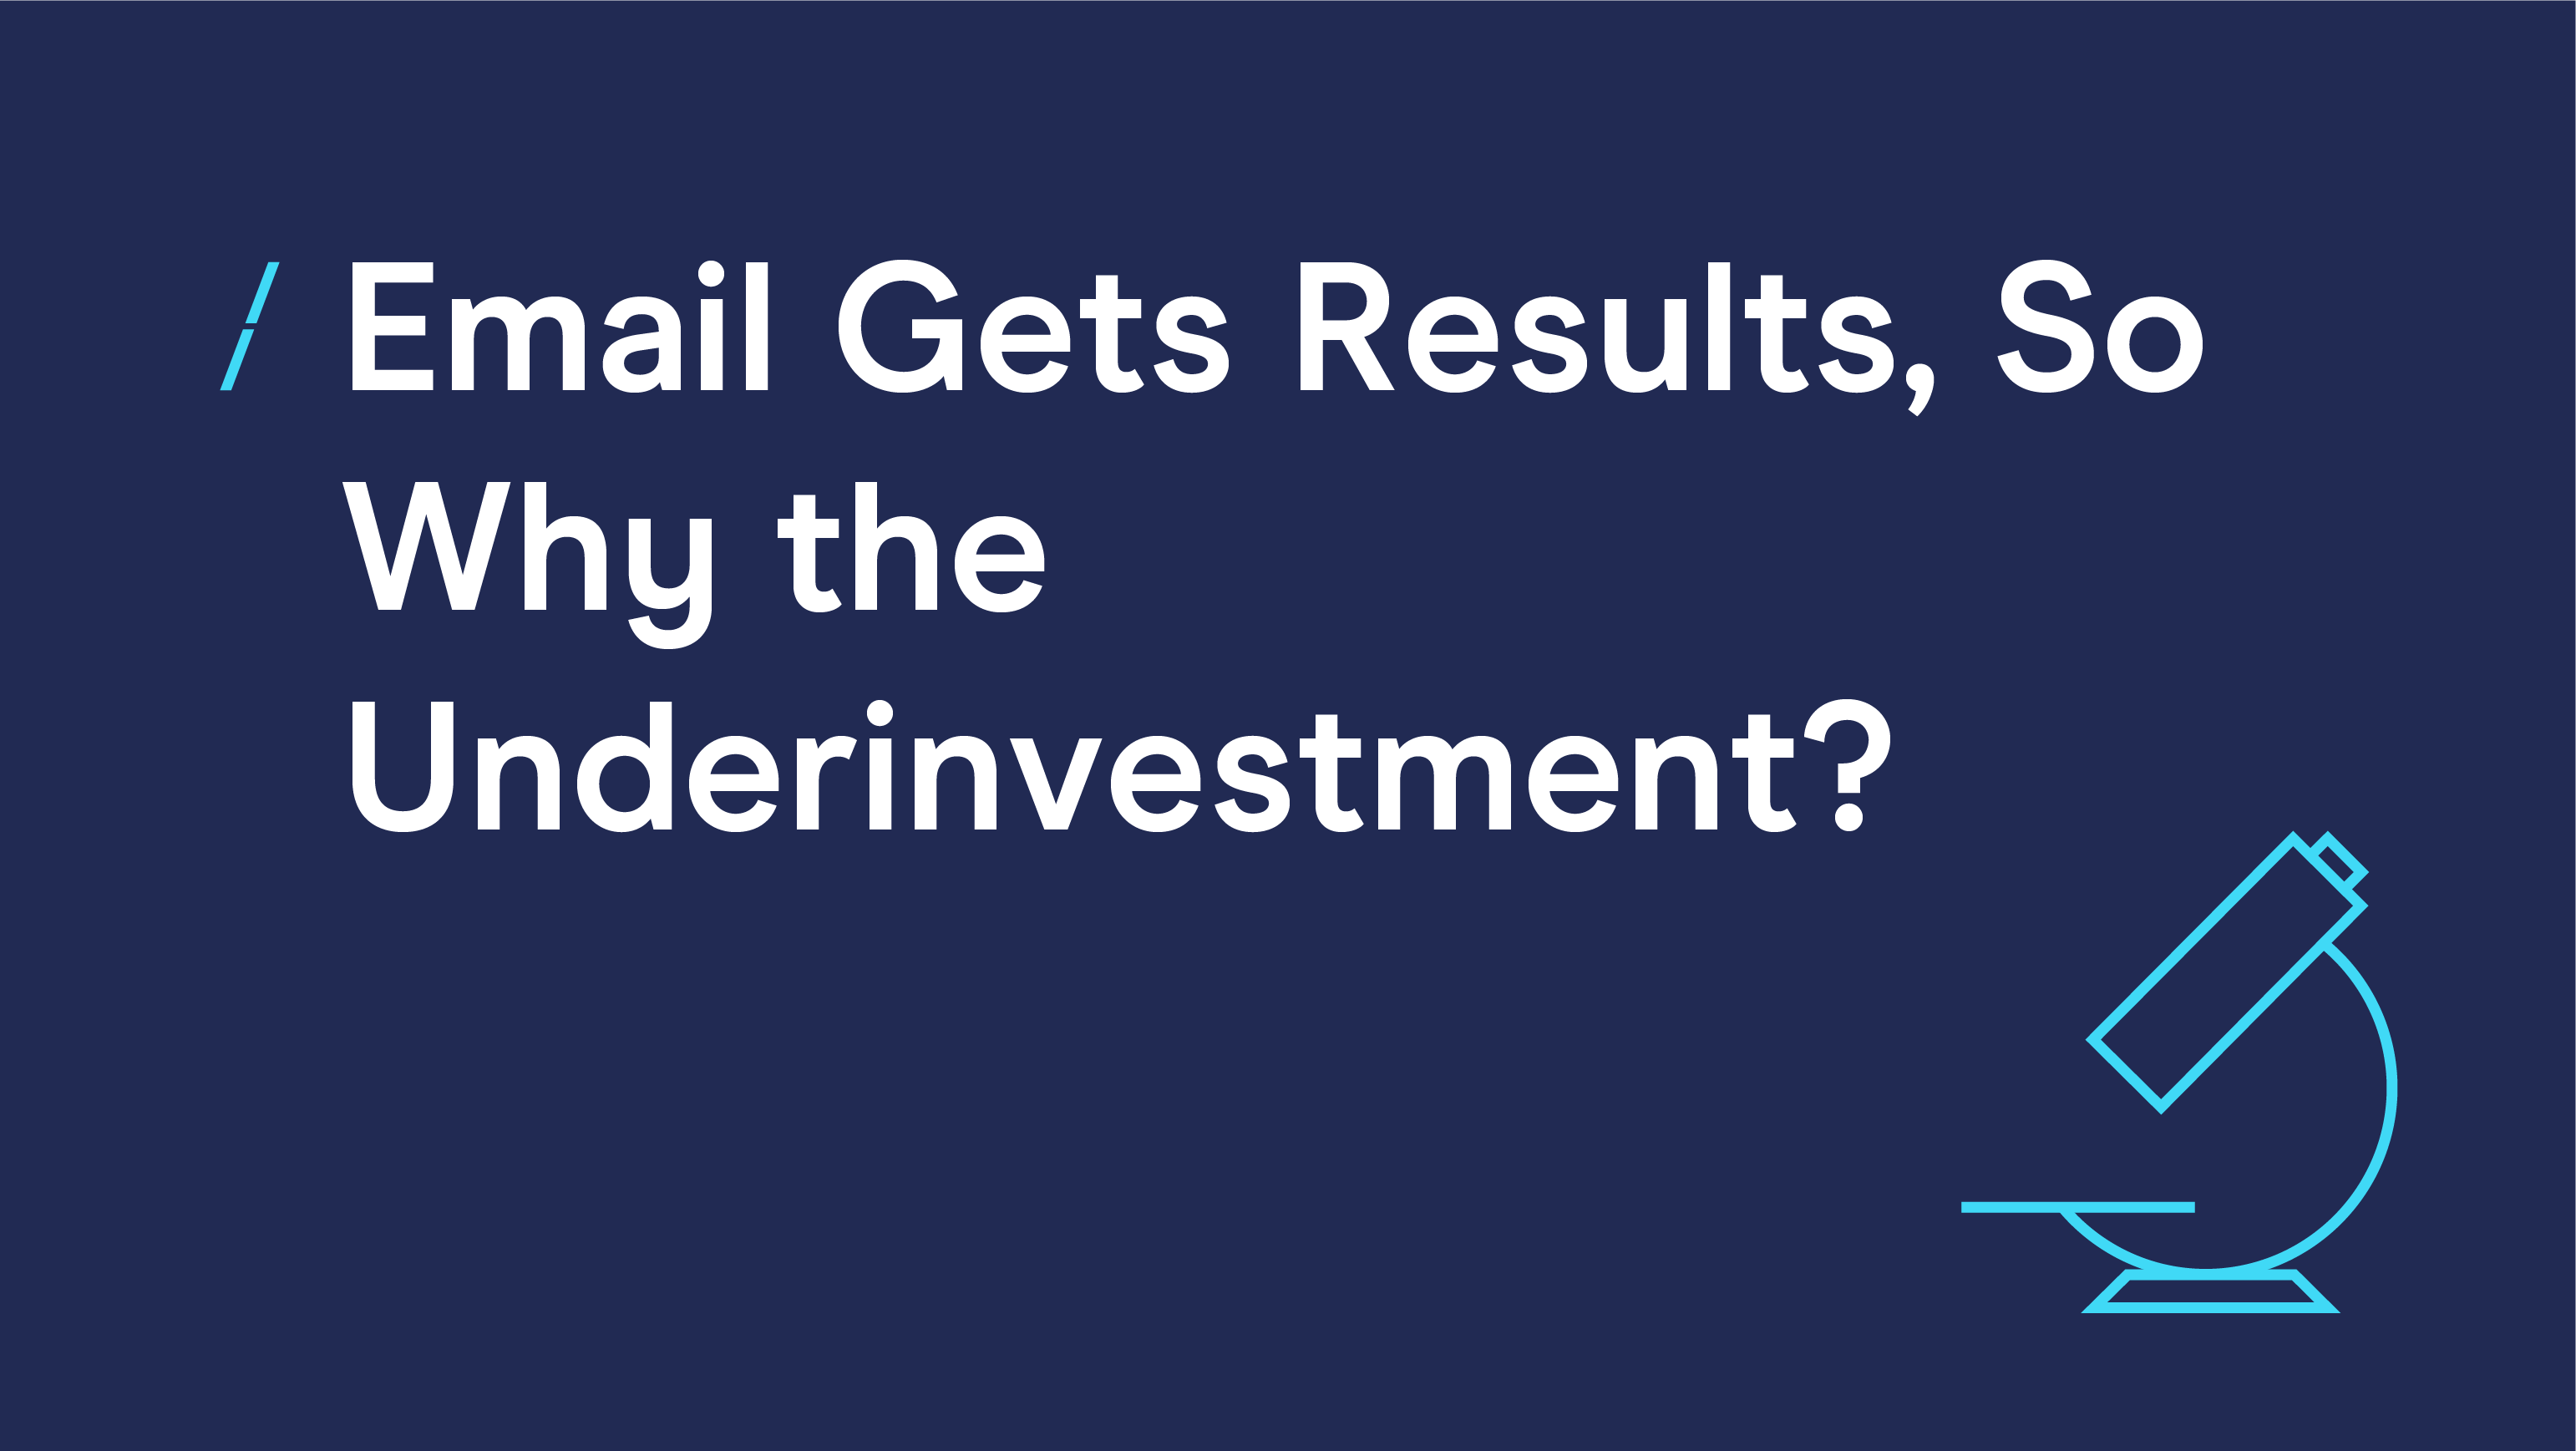 Email Gets Results So Why the Underinvestment_Research articles.png